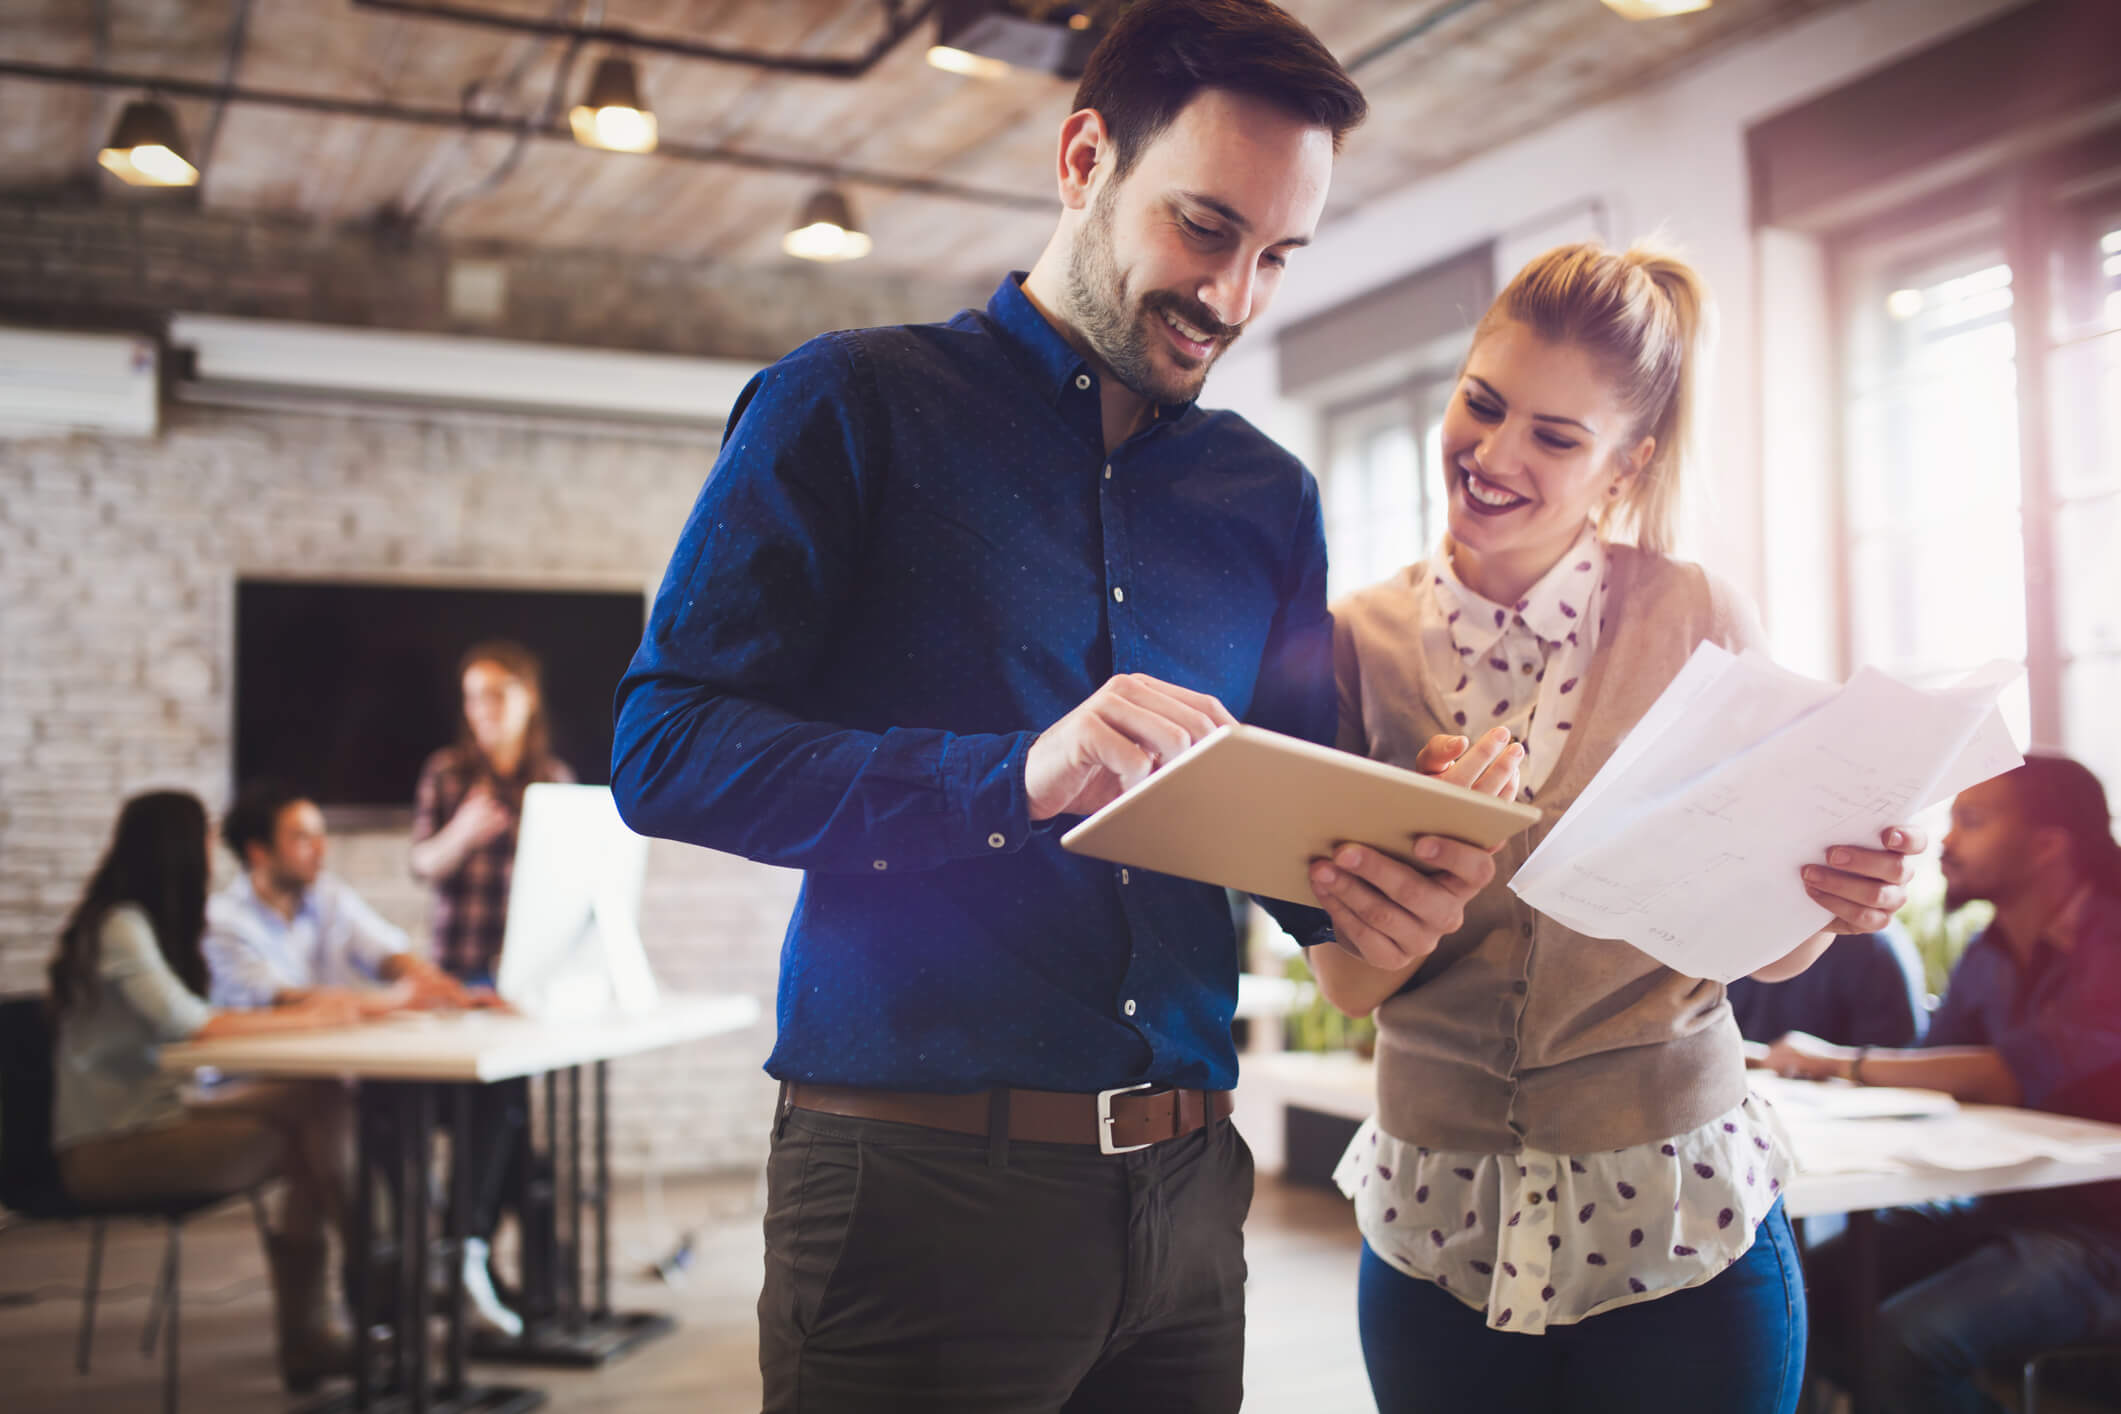 5 Demand Generation Challenges Faced by SMEs and How To Overcome Them